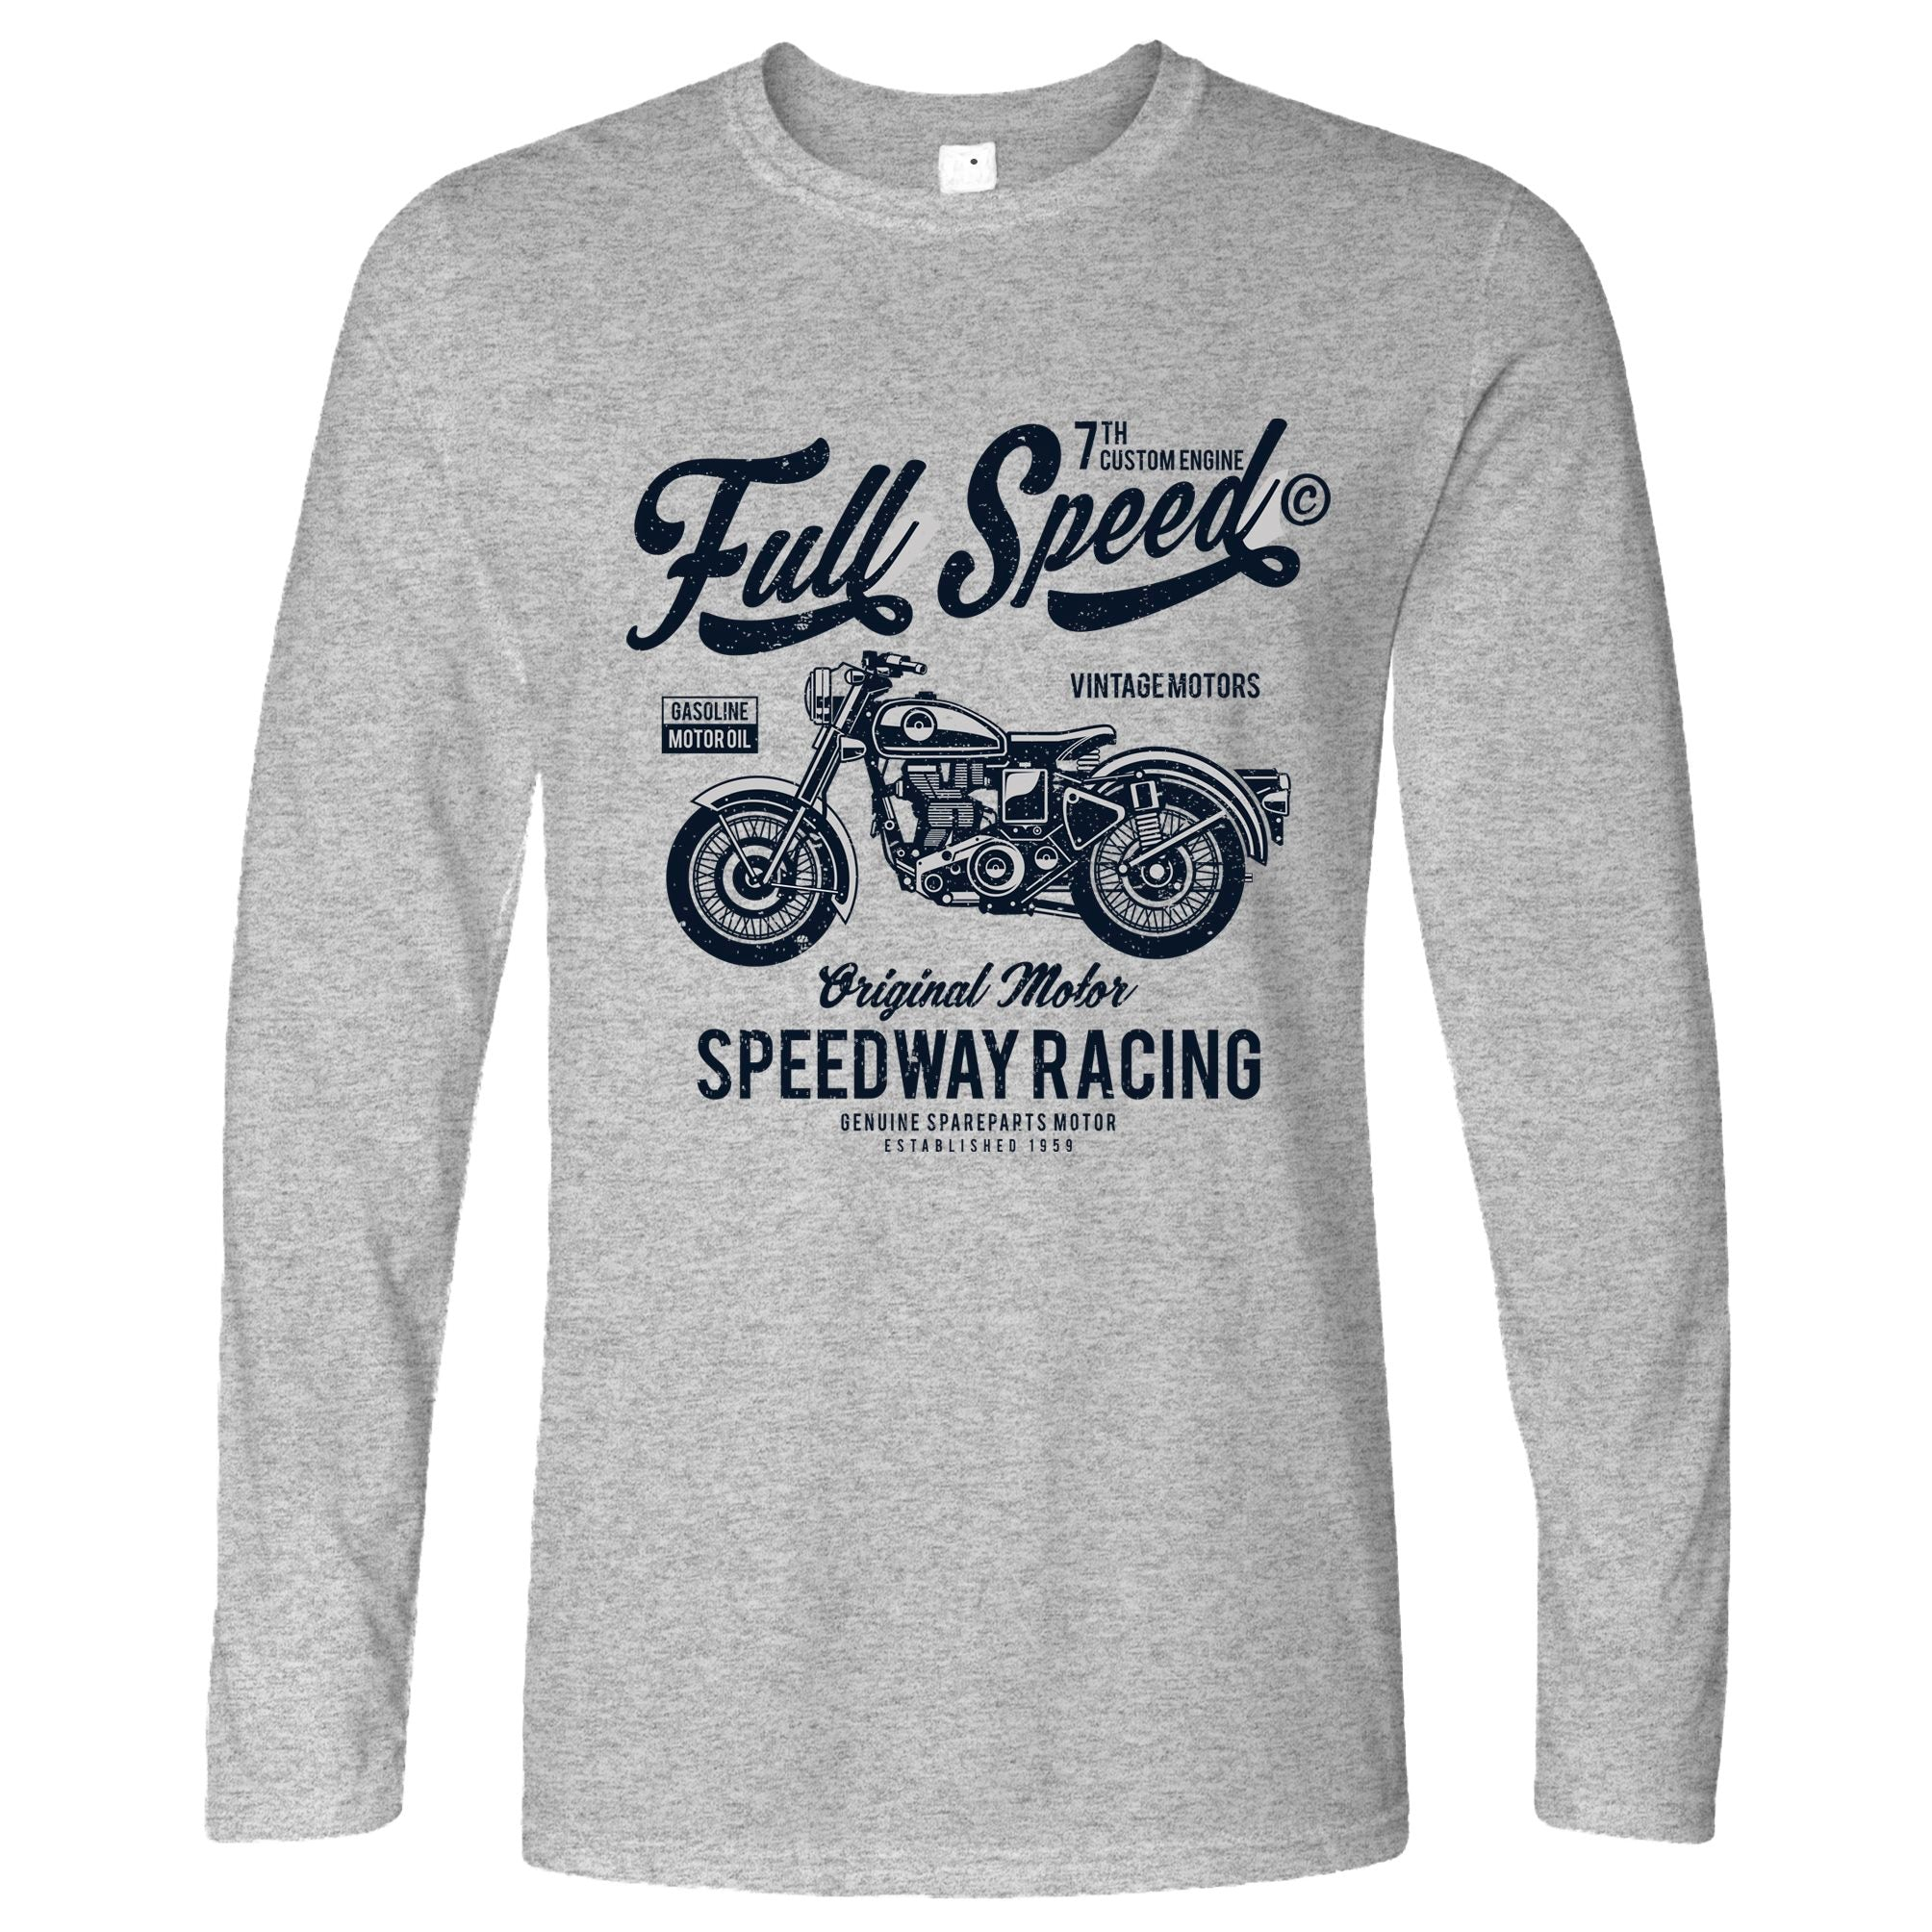 Retro Biker Long Sleeve Full Speed Speedway Racing Art T-Shirt